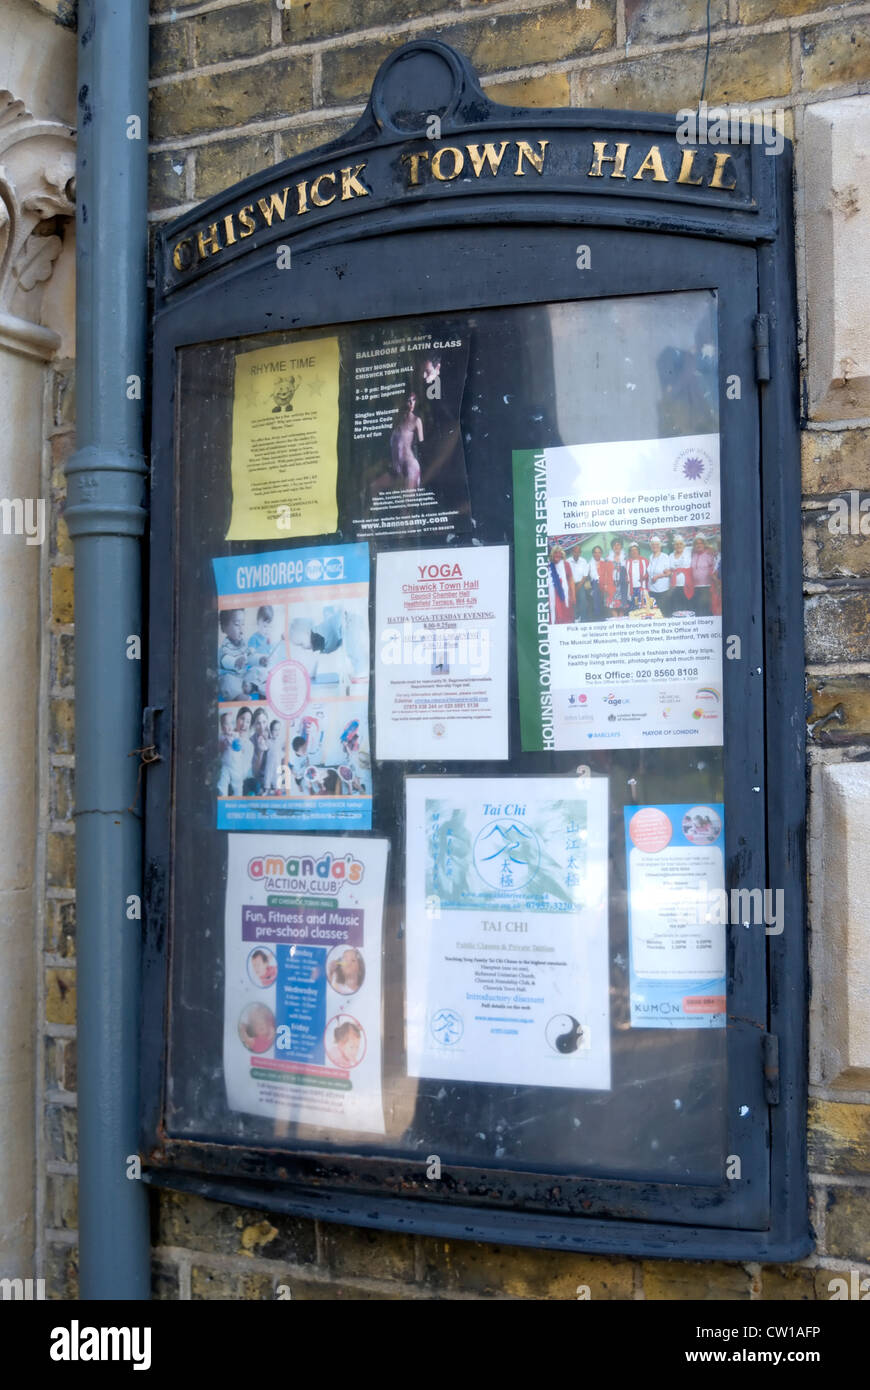 noticeboard at chiswick town hall, london, england - Stock Image